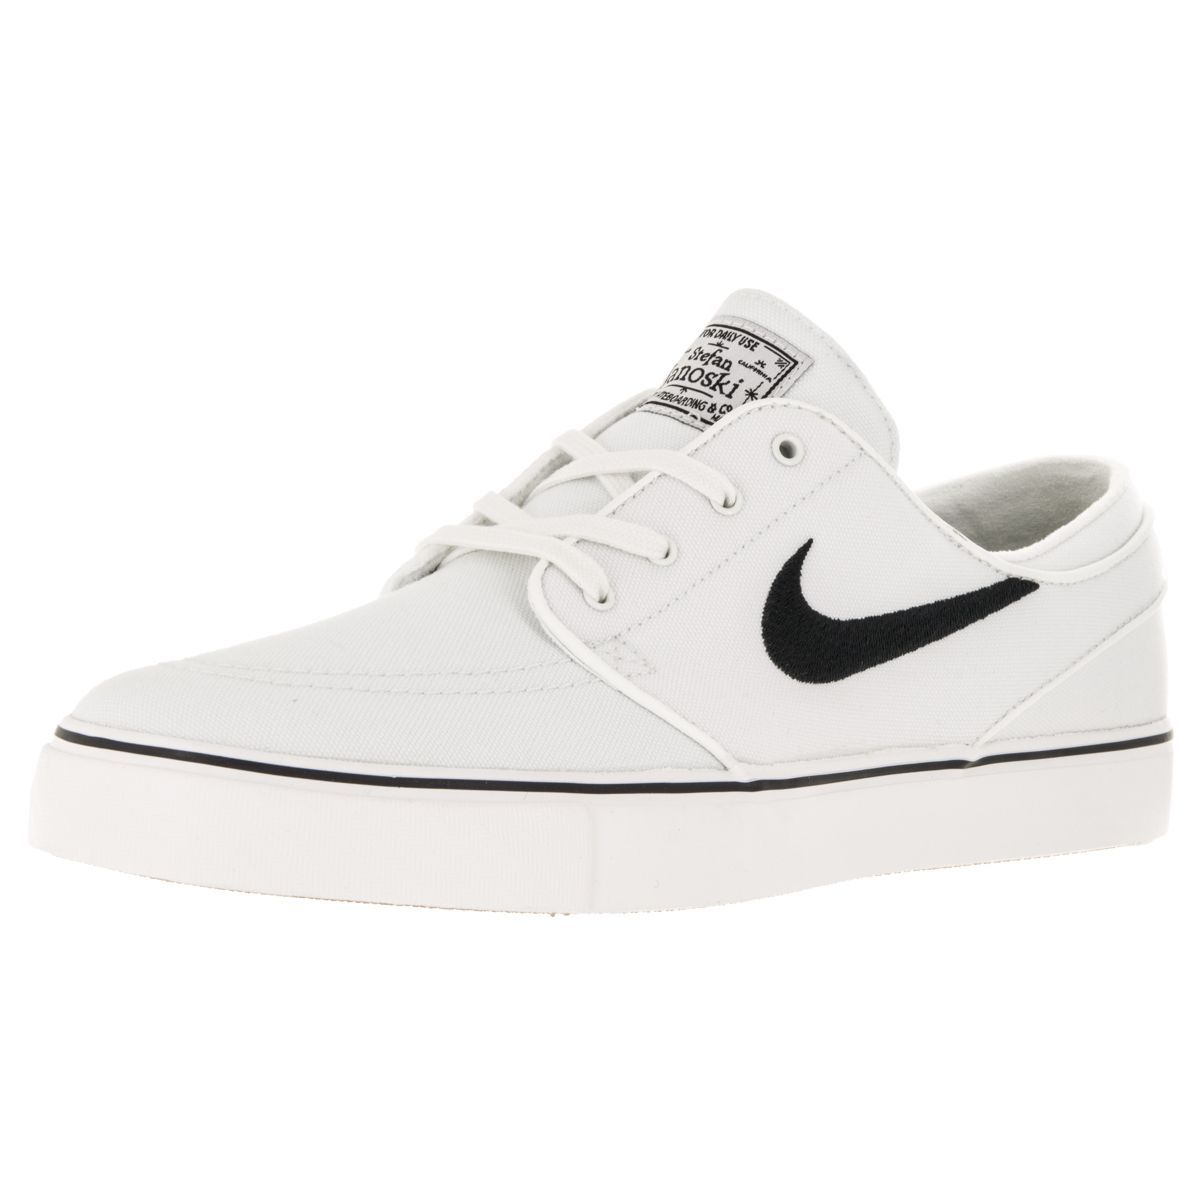 more photos bed3c 43e74 Wear these traditional-style Nike Zoom Stefan Janoski Summit skate shoes  whether youre